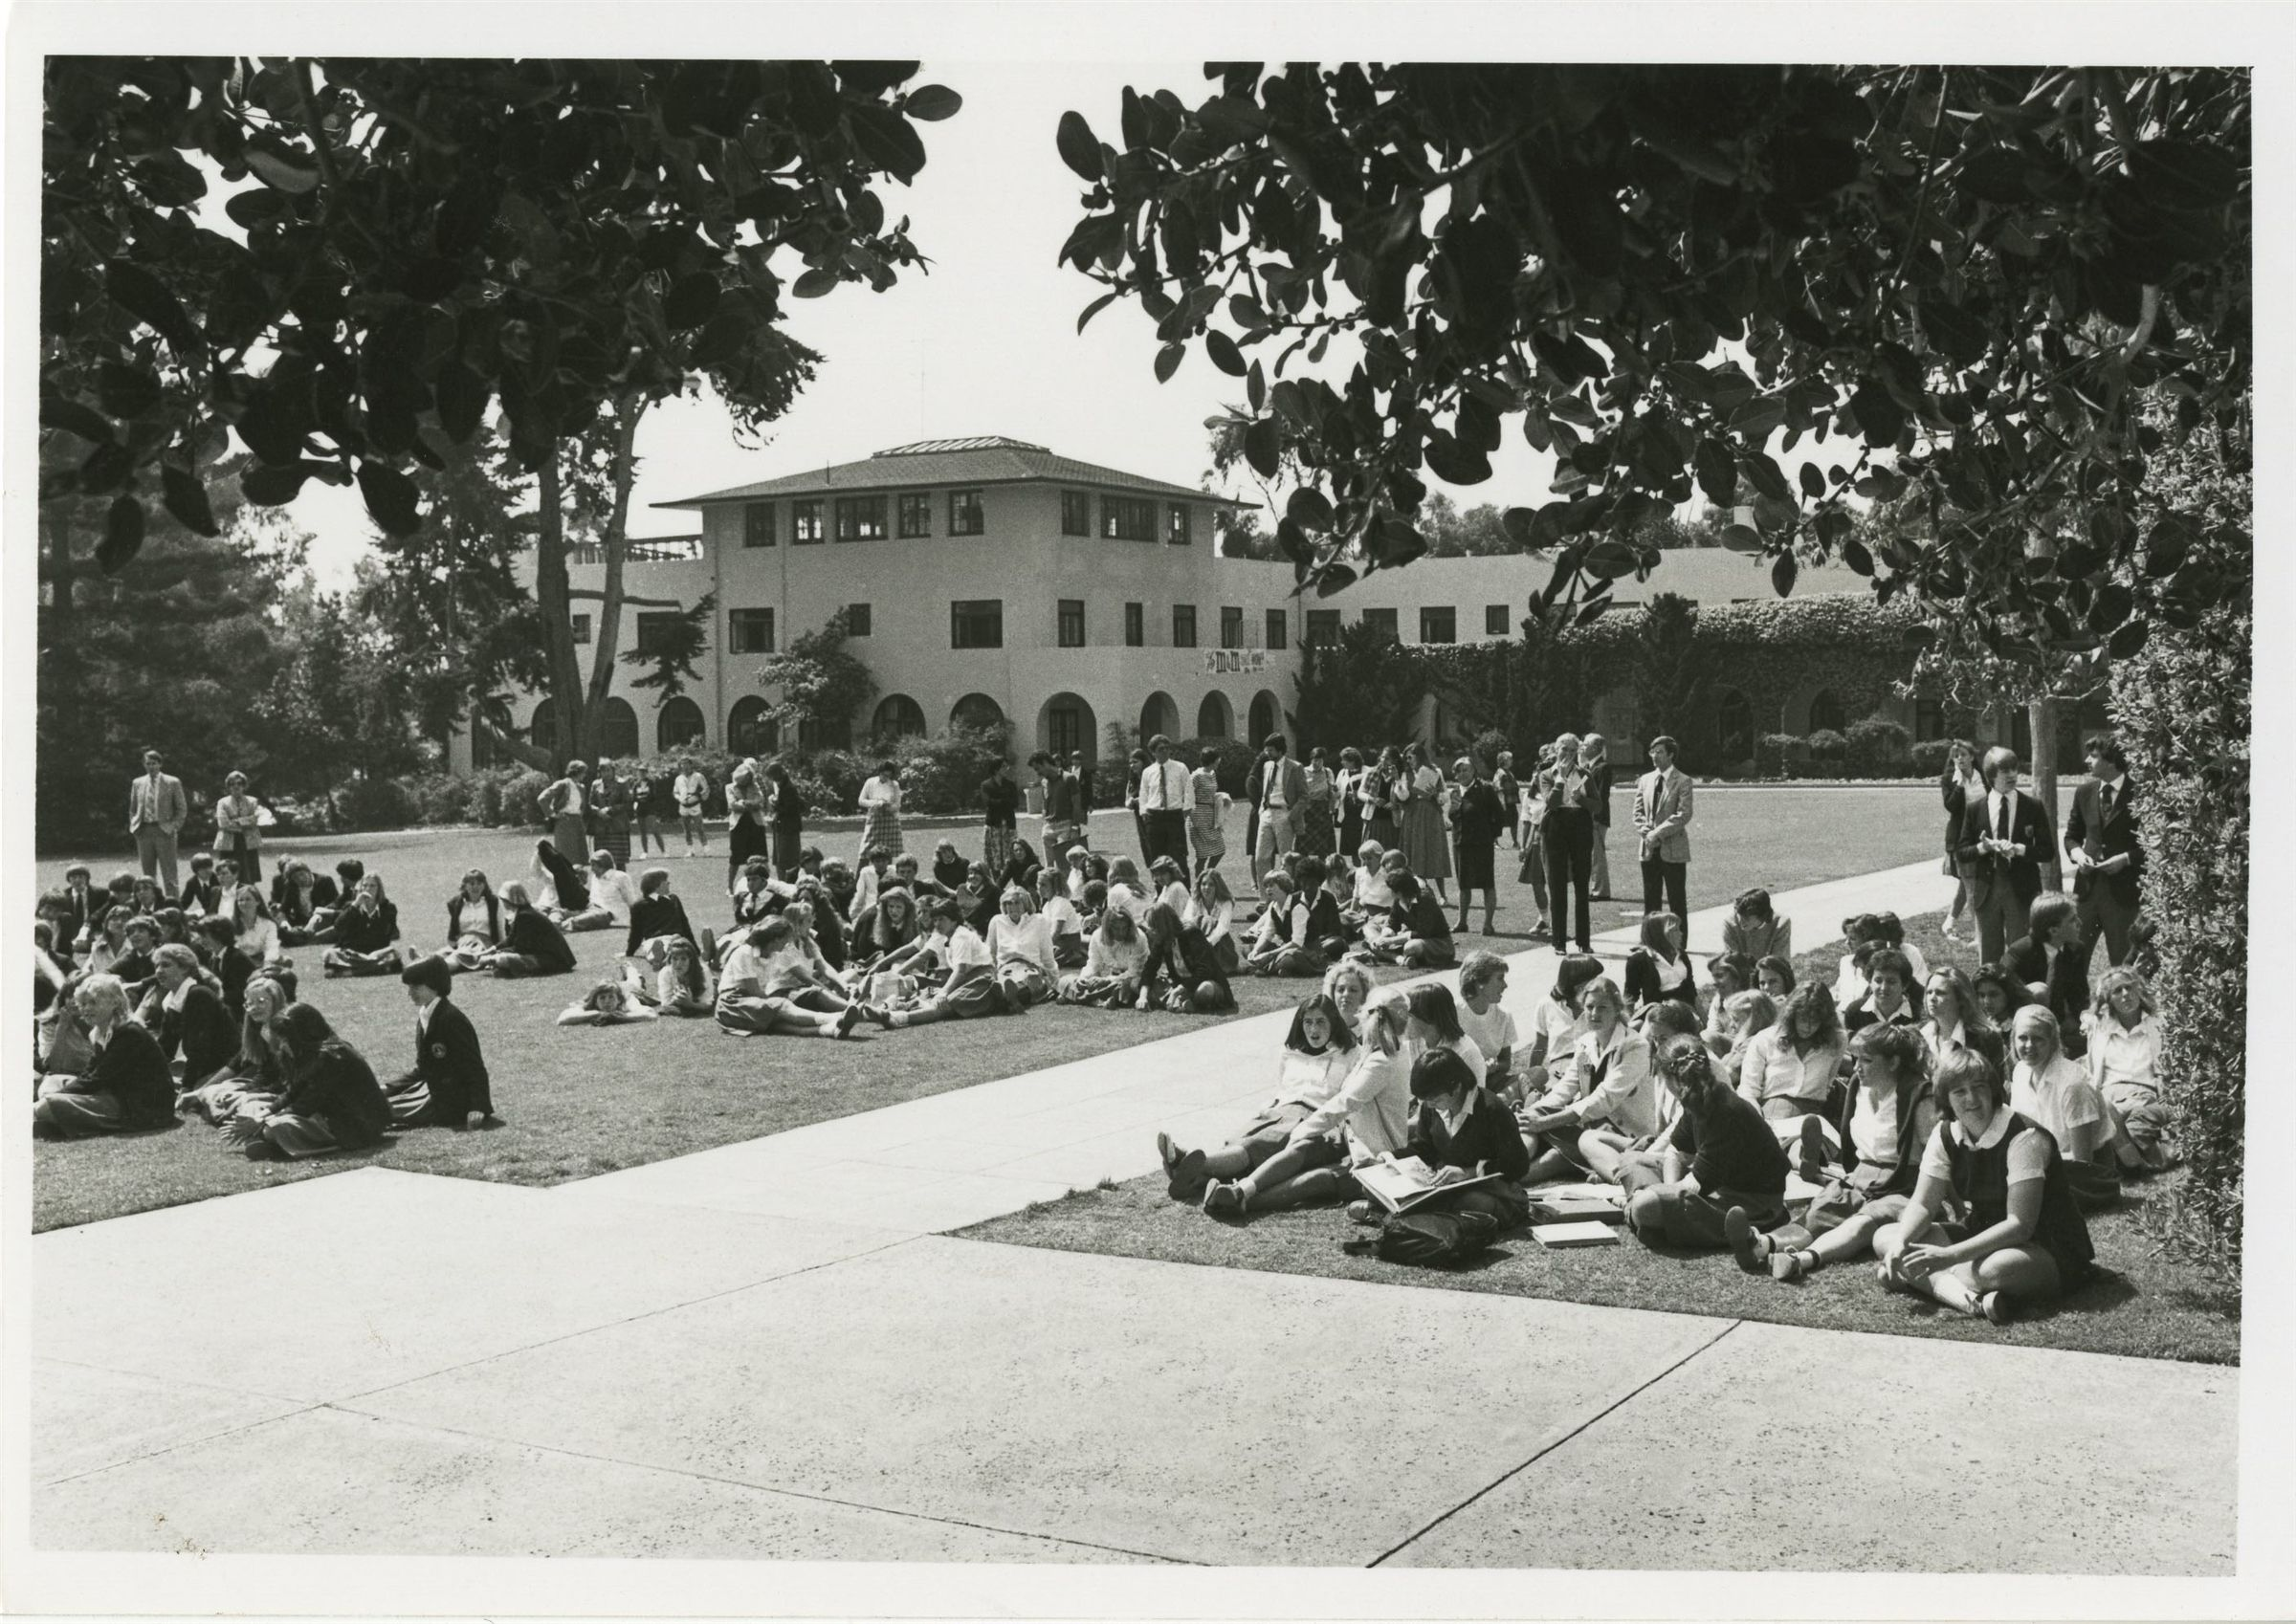 The Quad has also been a place of fun and camaraderie, as shown in this photo from 1982!